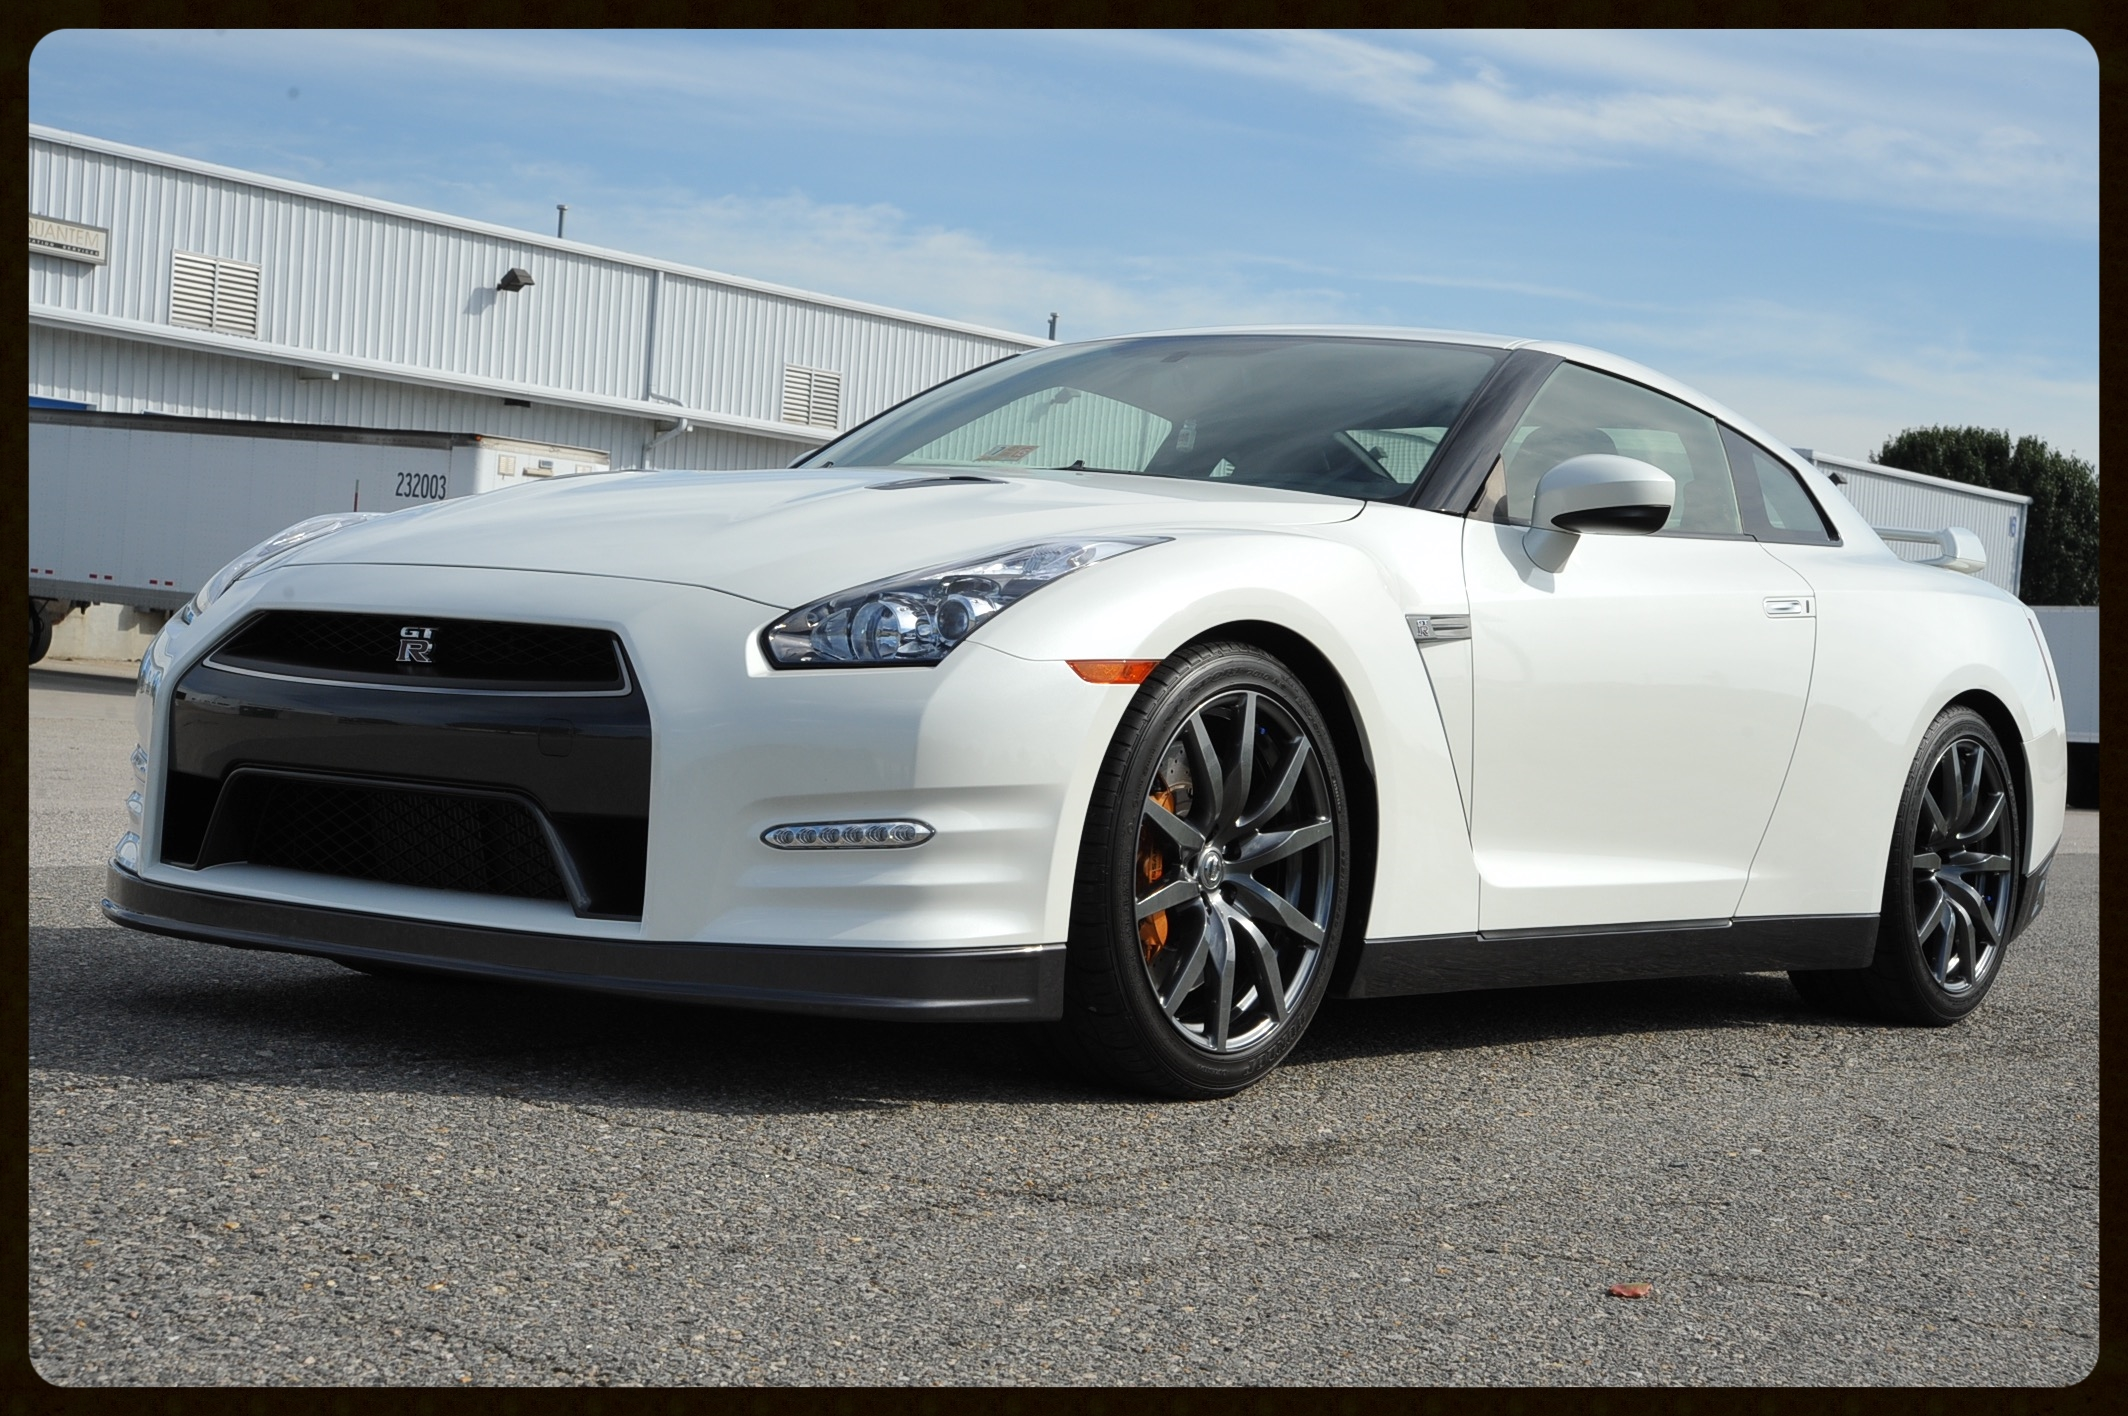 2013 GT-R with only 8k miles....This GT-R is Like Brand New and is 100% Original and New Porsche GT2 Trade